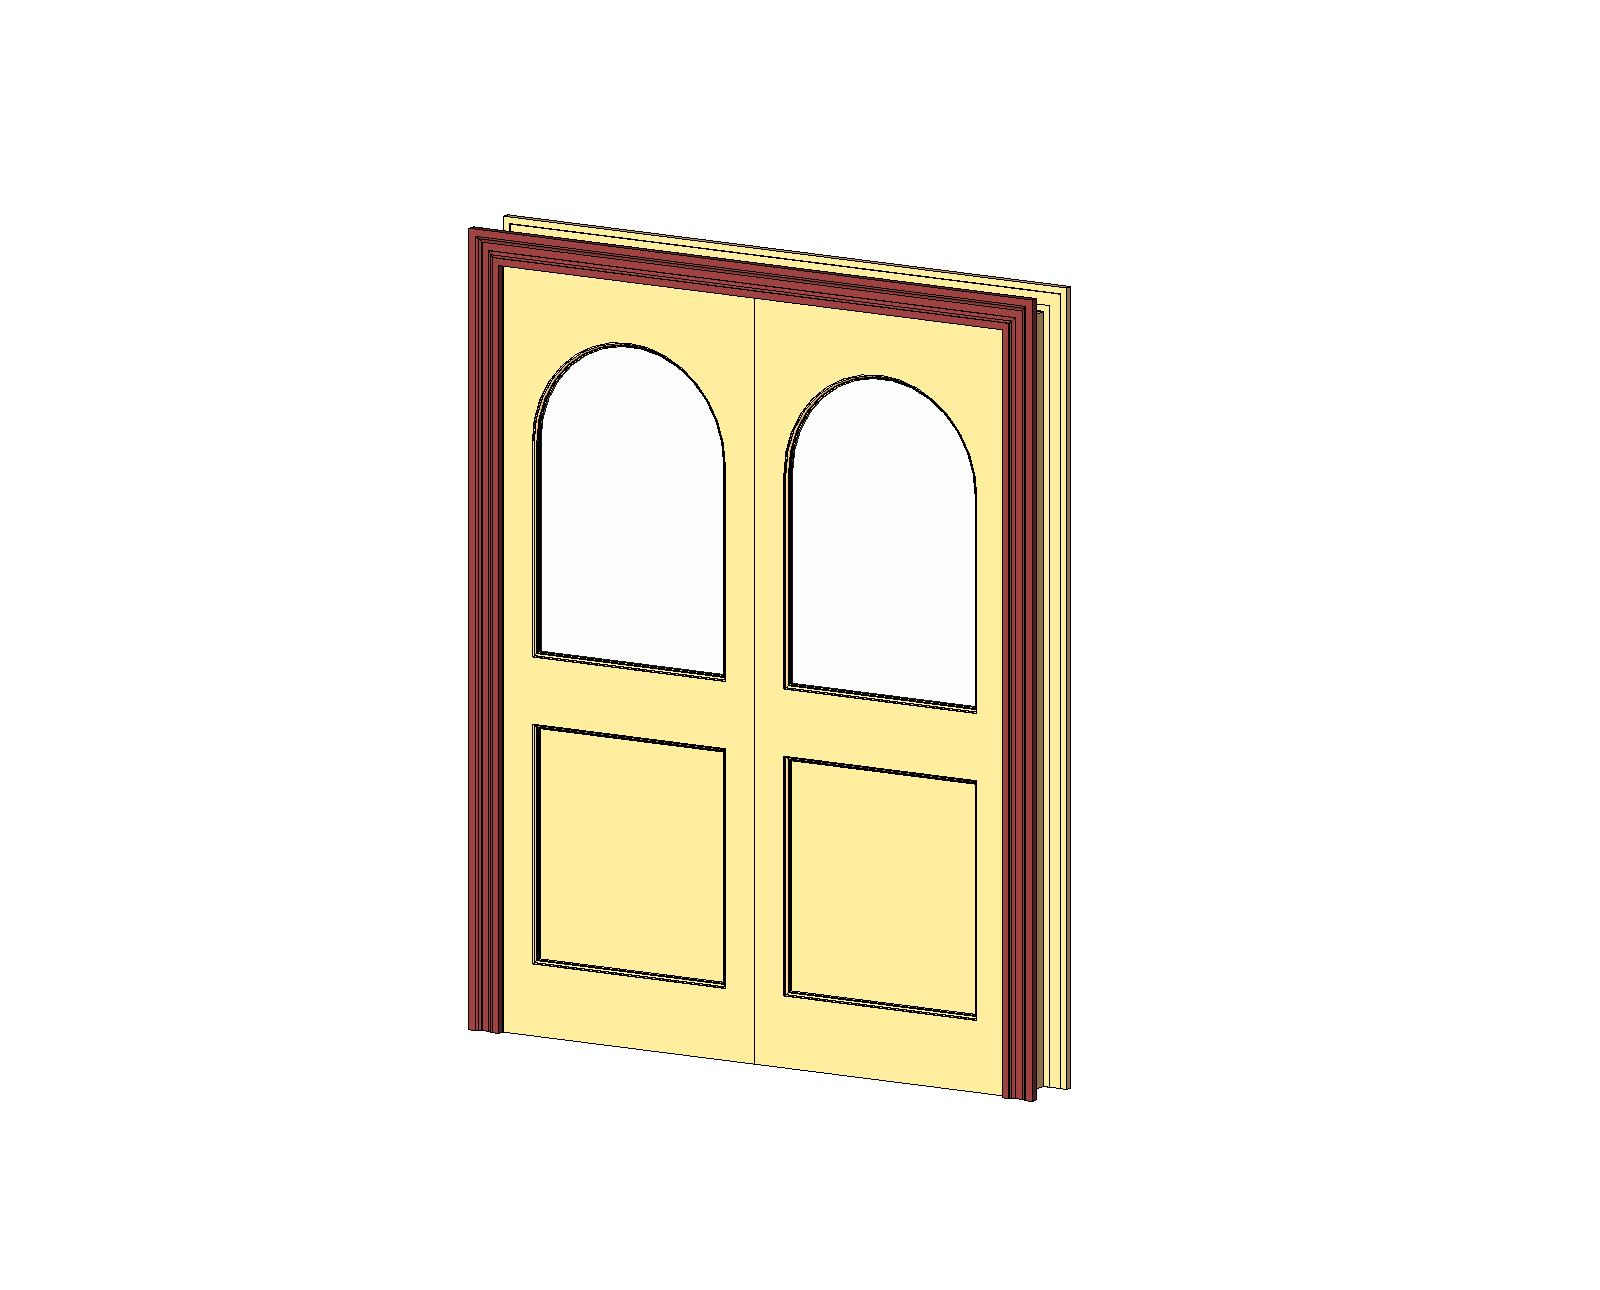 1290 #BCA00F Doors And Hardware: Common Doors: Entry Double: 2 Panel Glazed Round  save image Hardware For Double Doors 46771600